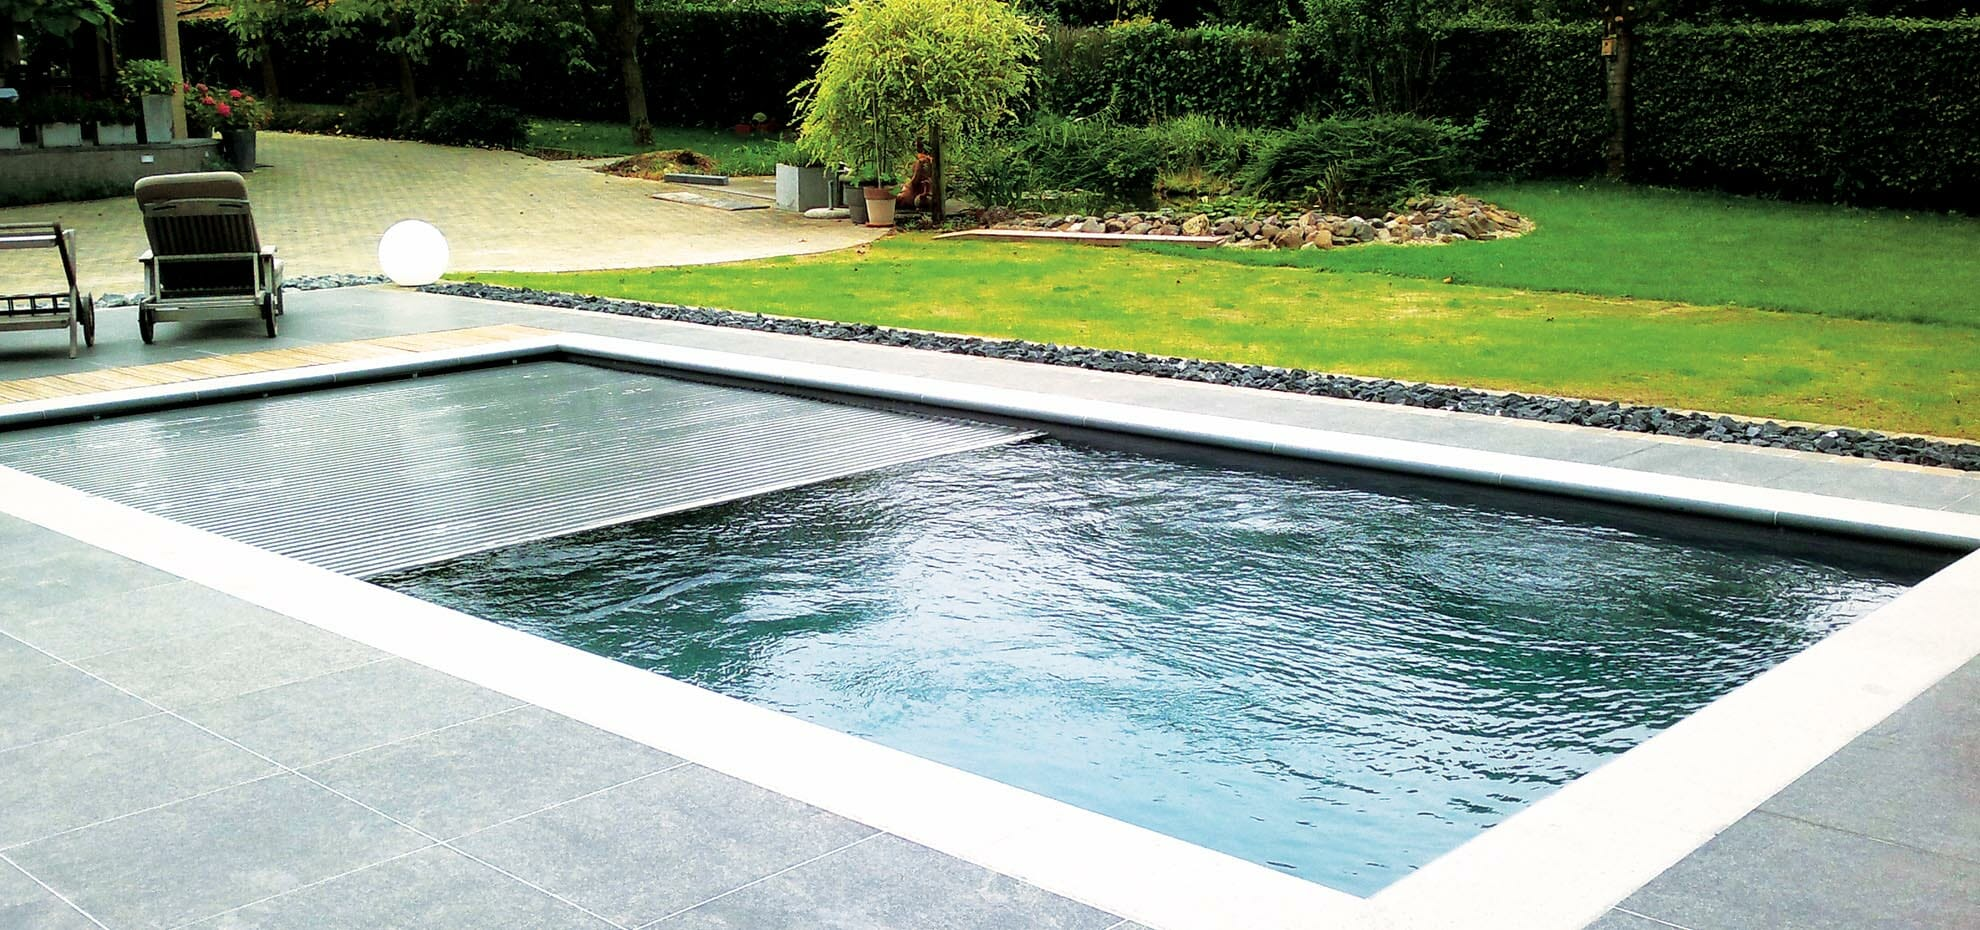 The Reflection with Auto Cover and coping stone by Leisure Pools